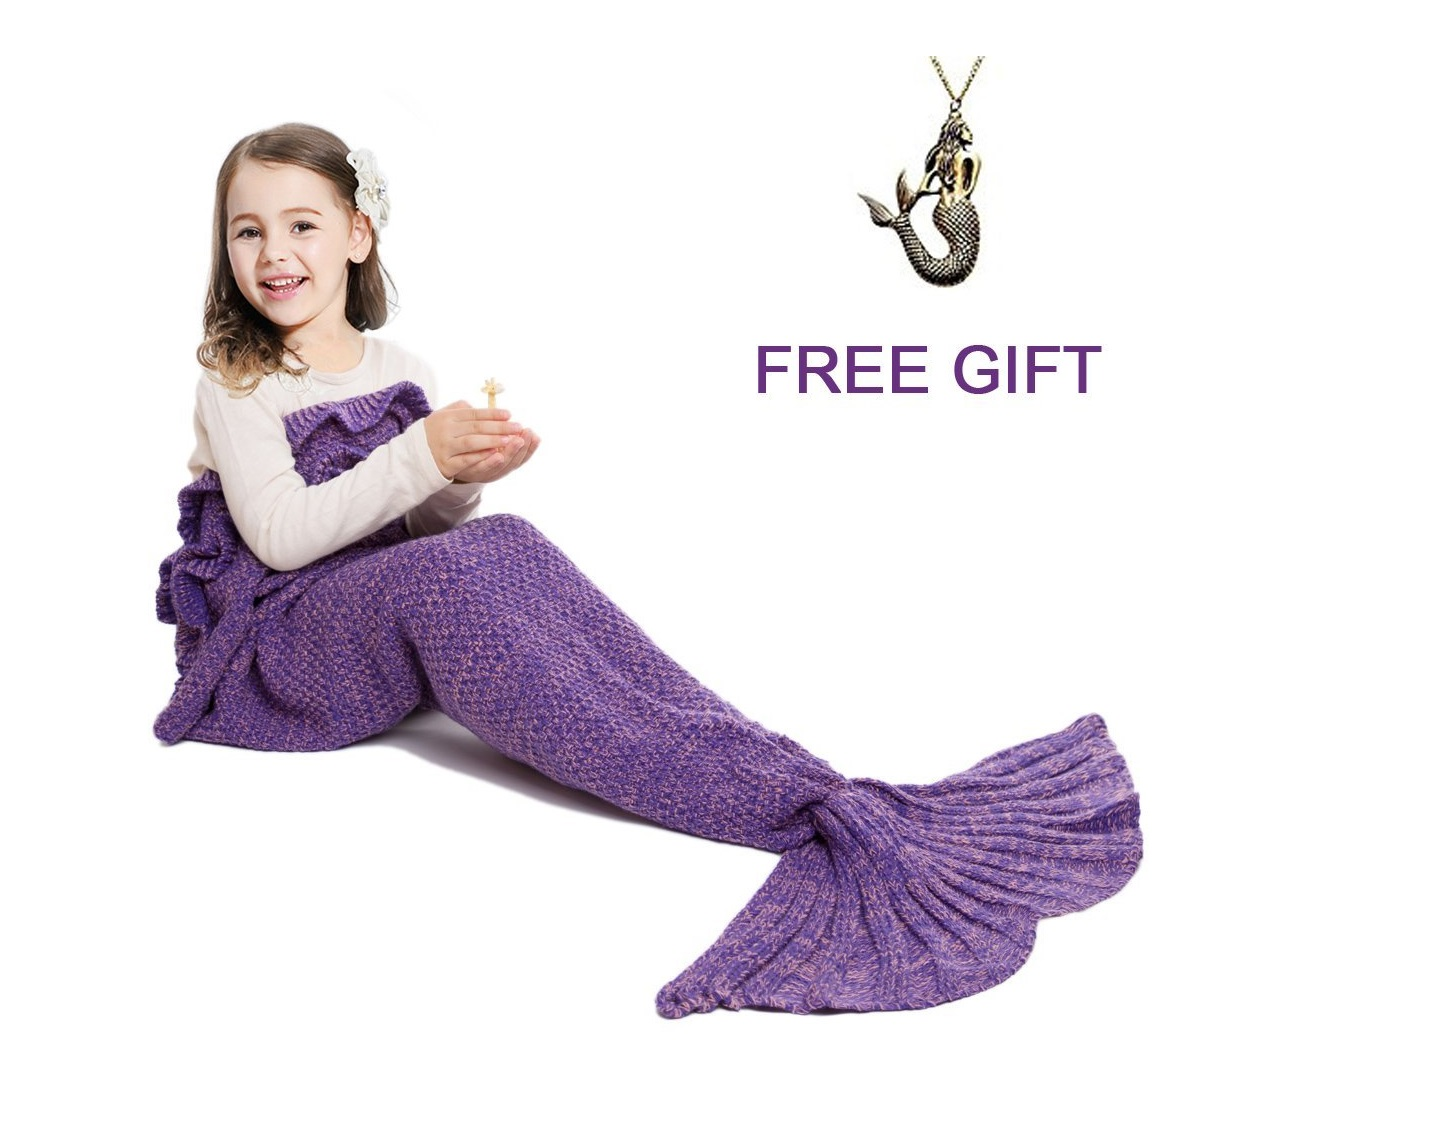 Top 10 Best Mermaid Tail Blankets in 2018